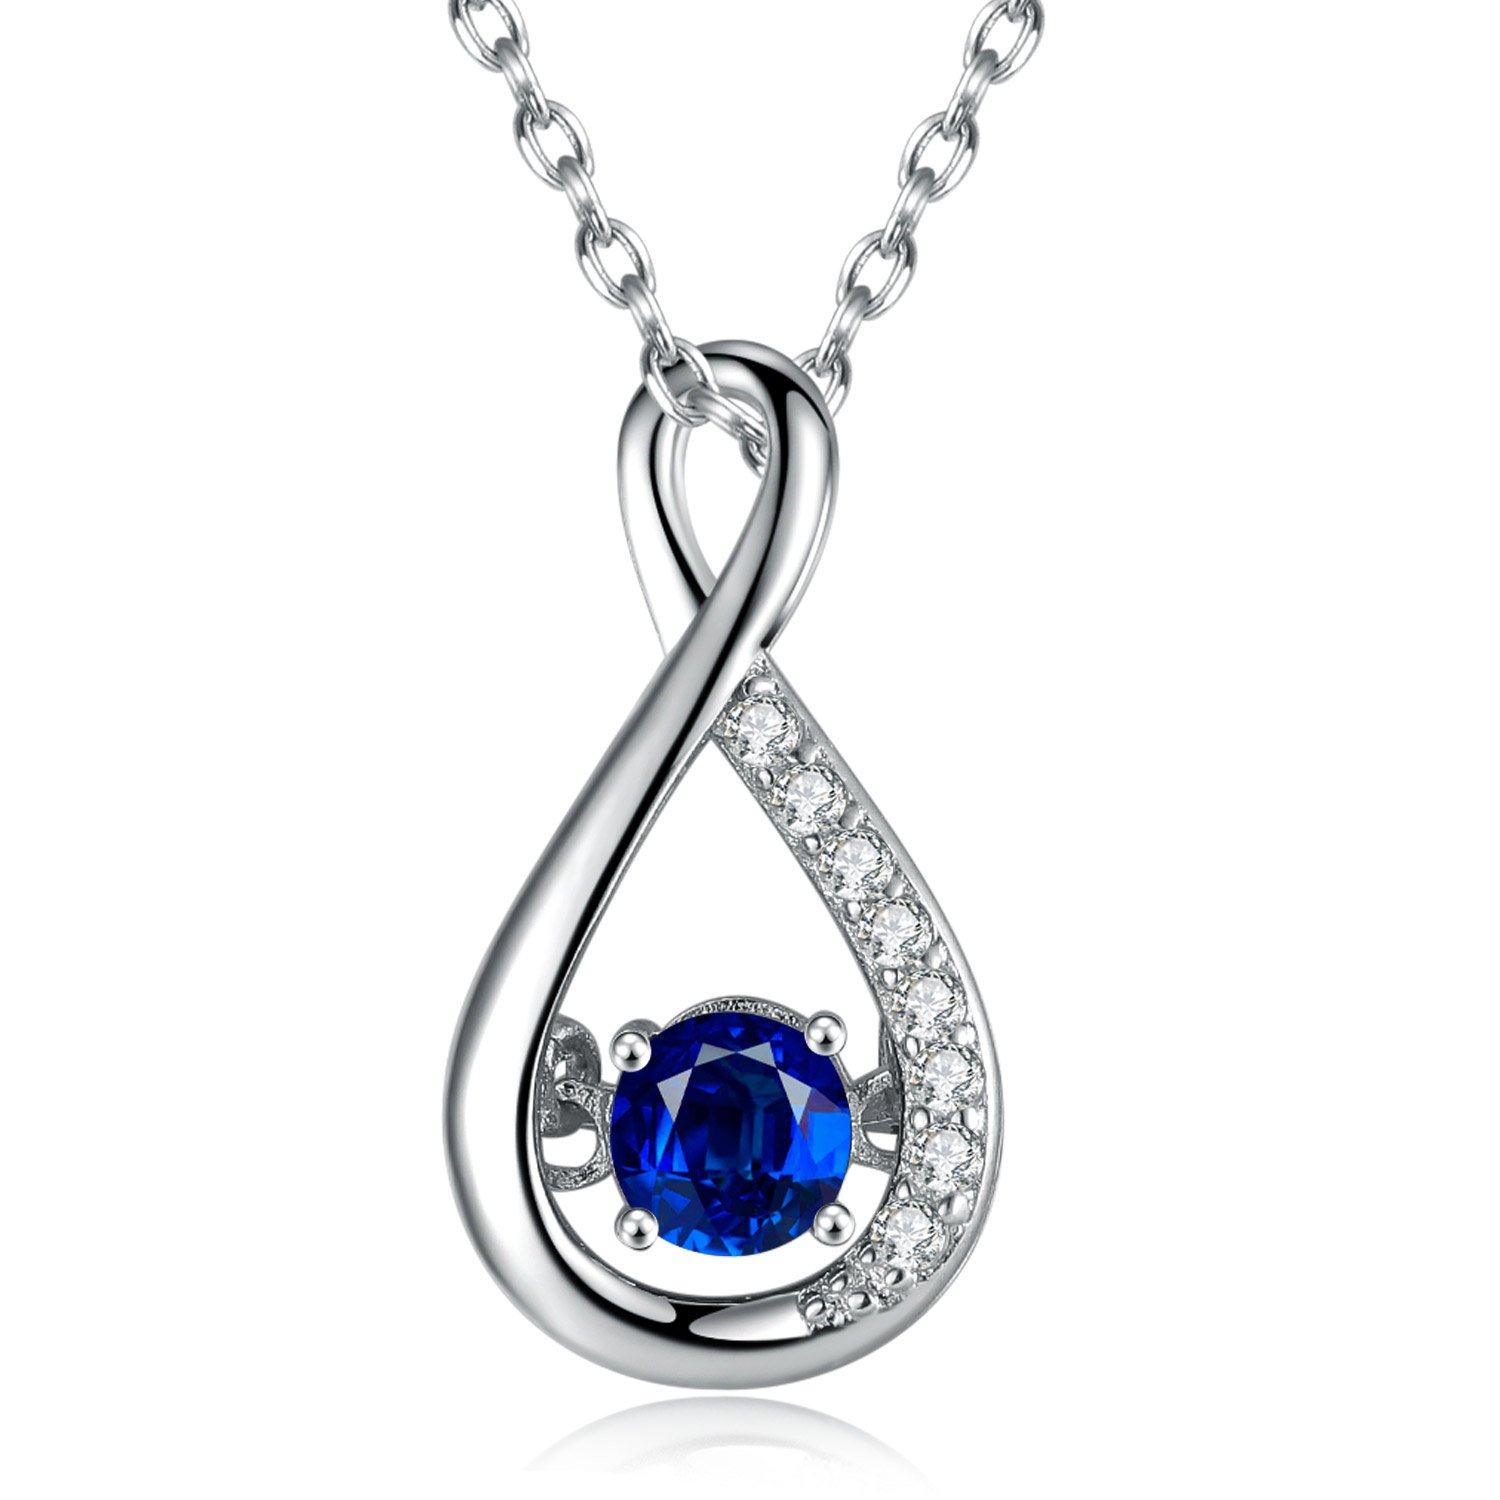 Caperci Sterling Silver Gemstone Created Blue Sapphire Jewelry Infinity Pendant Necklace for Women, 18''